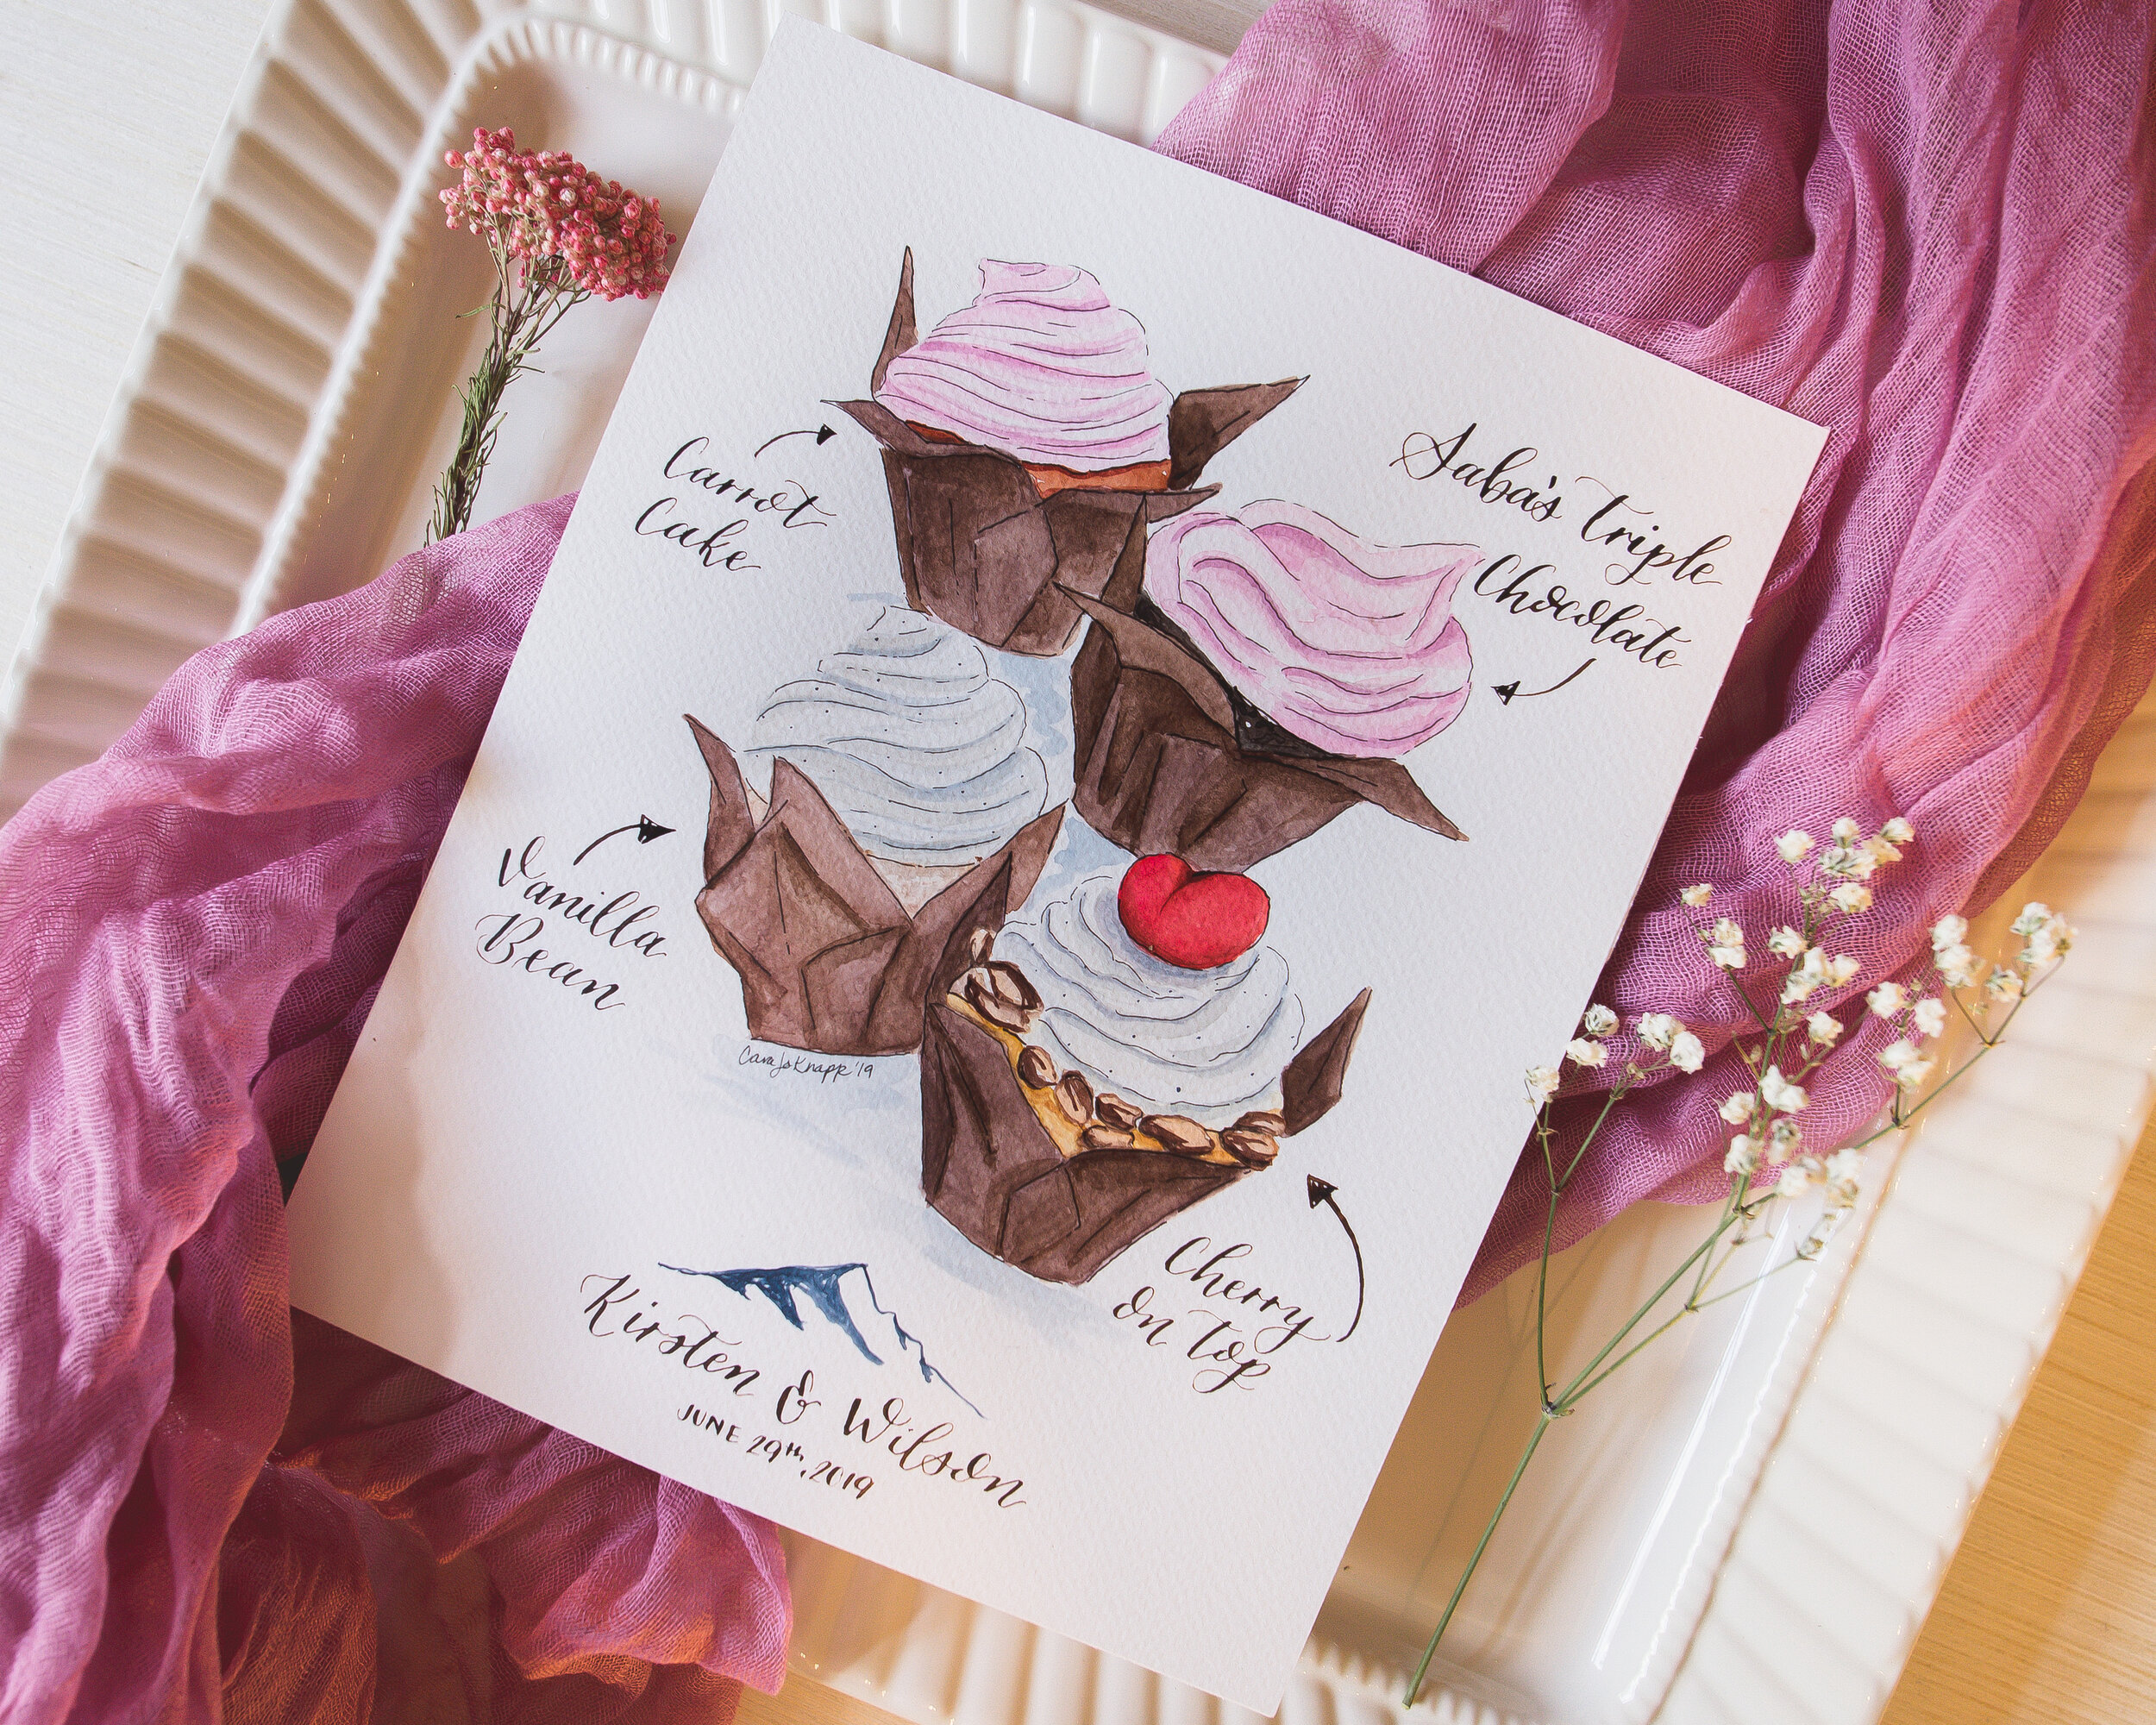 Cupcake menu with watercolor illustration and modern calligraphy.